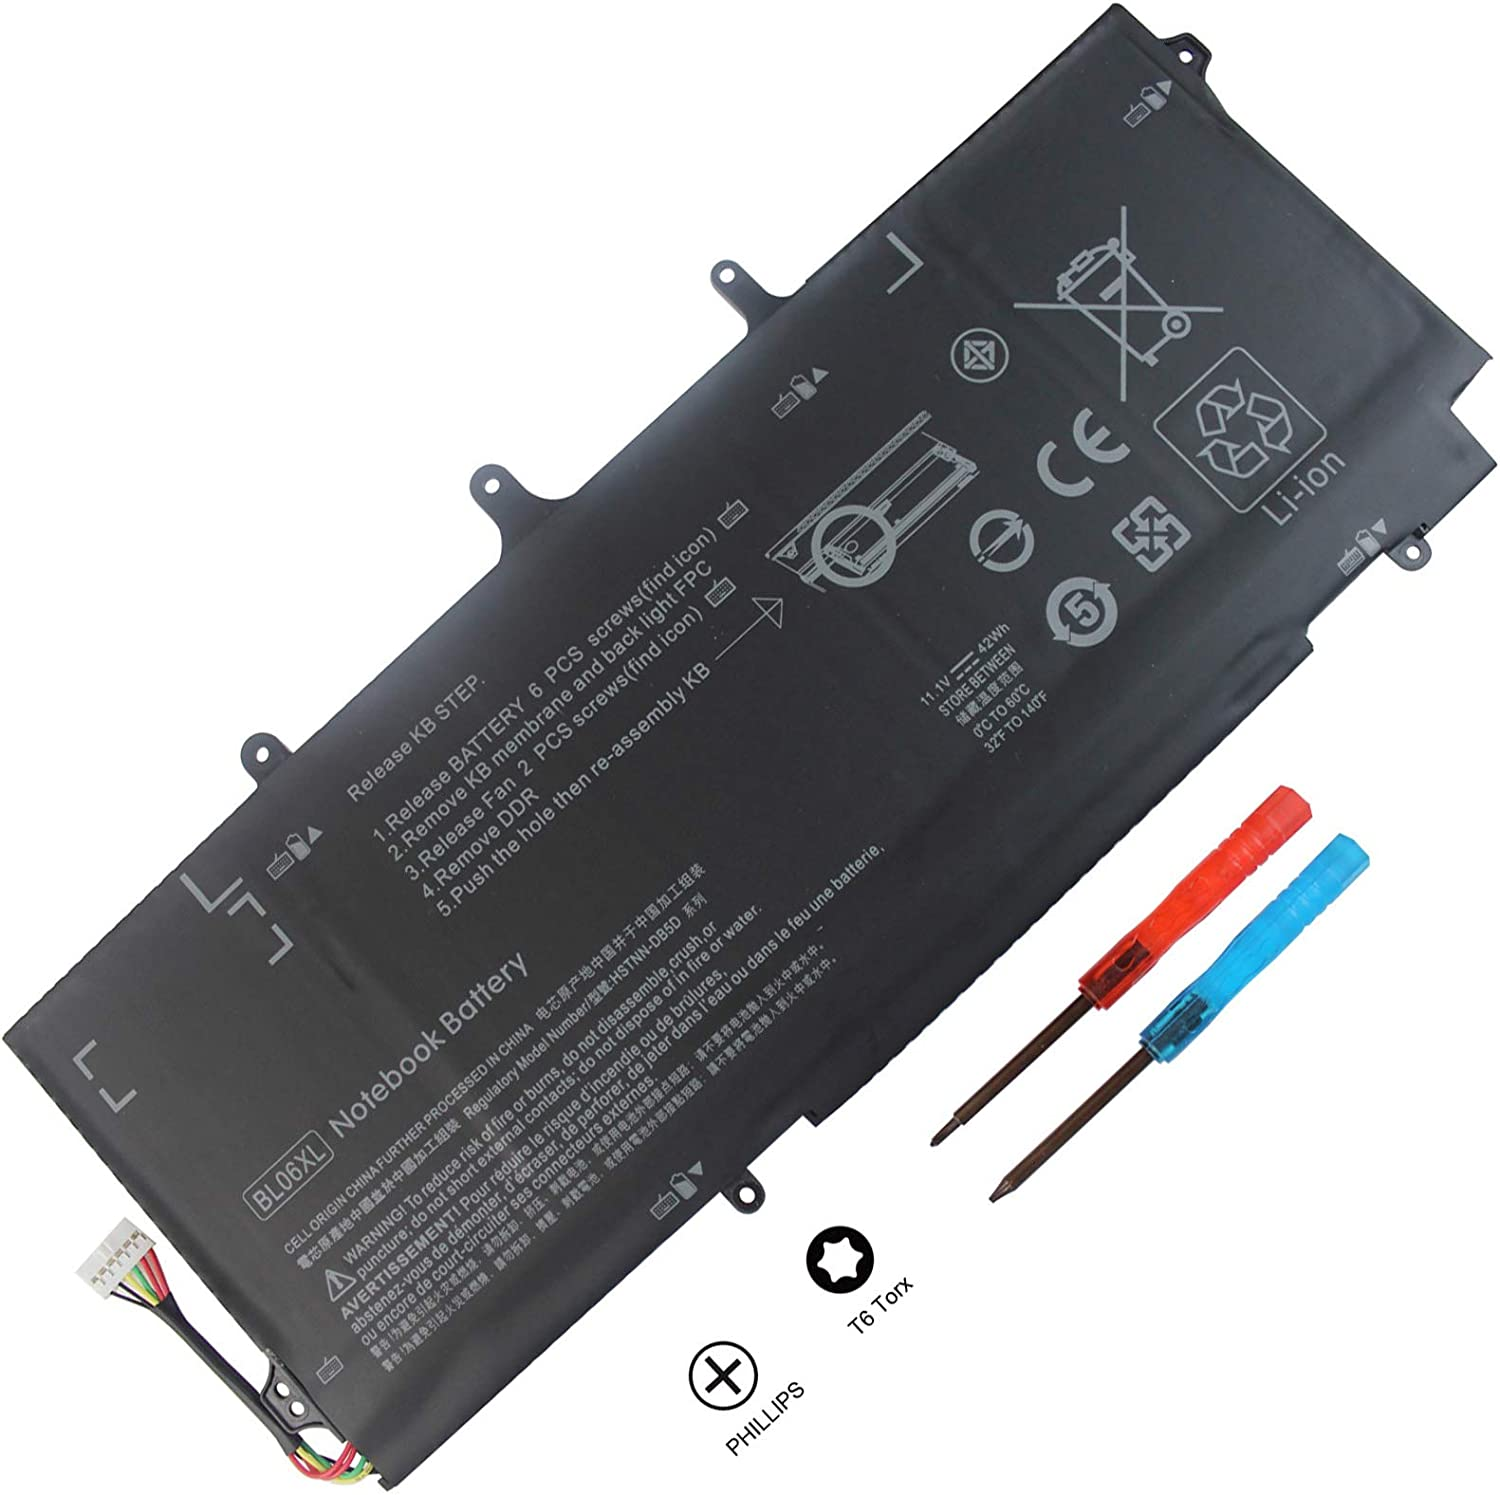 Shareway BL06XL Replacement Laptop Battery Compatible for HP EliteBook Folio 1040 G0 G1 G2 722236-171 HSTNN-DB5D HSTNN-W02C 722236-1C1 722236-2C1 L9S82PA